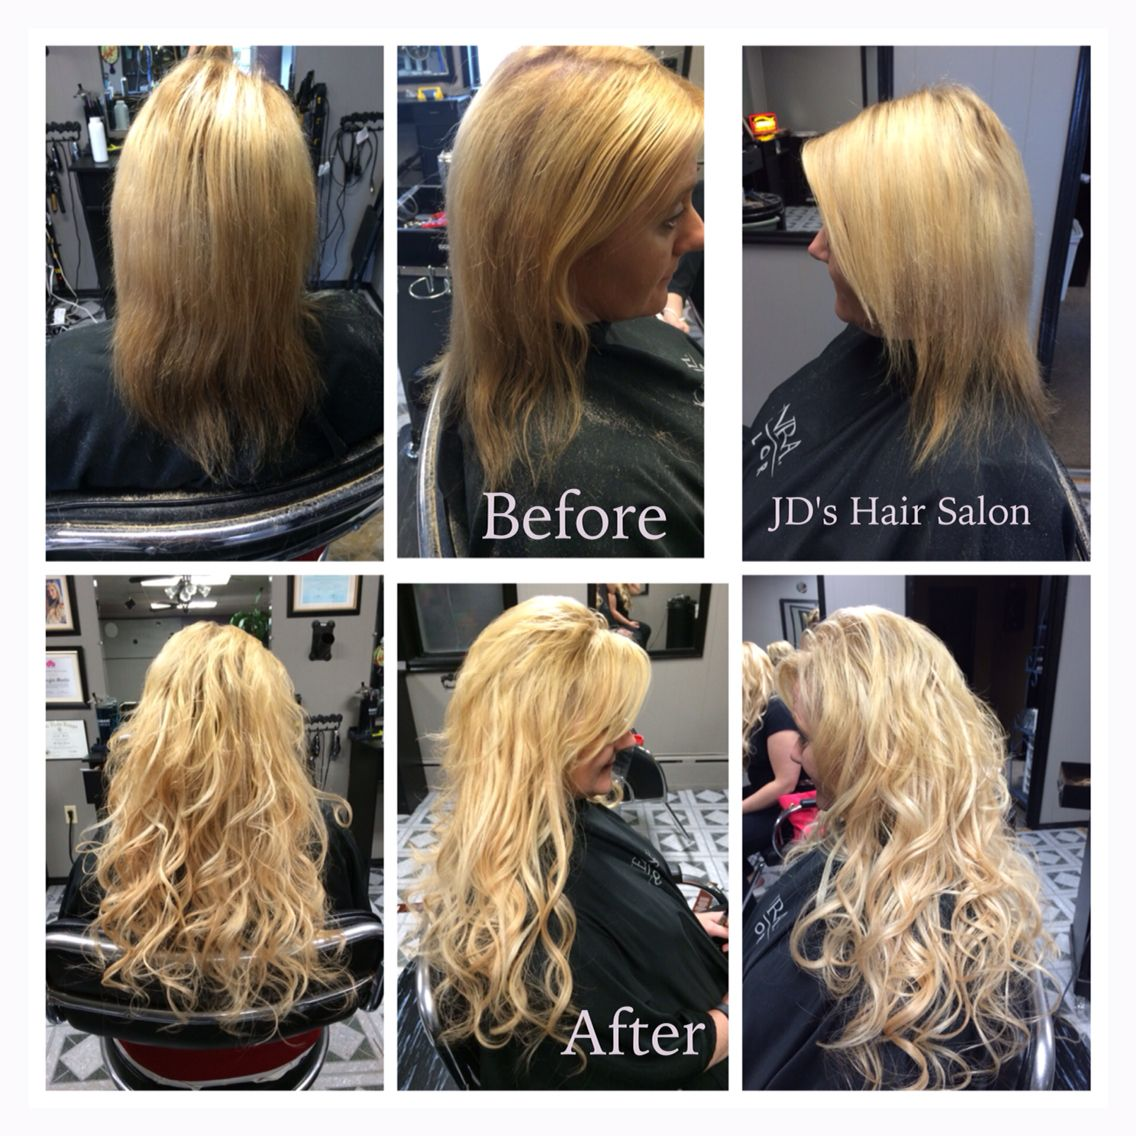 Before And After Pictures Of Hair Extensions 18 Of Warm Fusion Blonde Human Hair Extensions Www Jd Permed Hairstyles Hair Extensions 20 Inch Hair Extensions